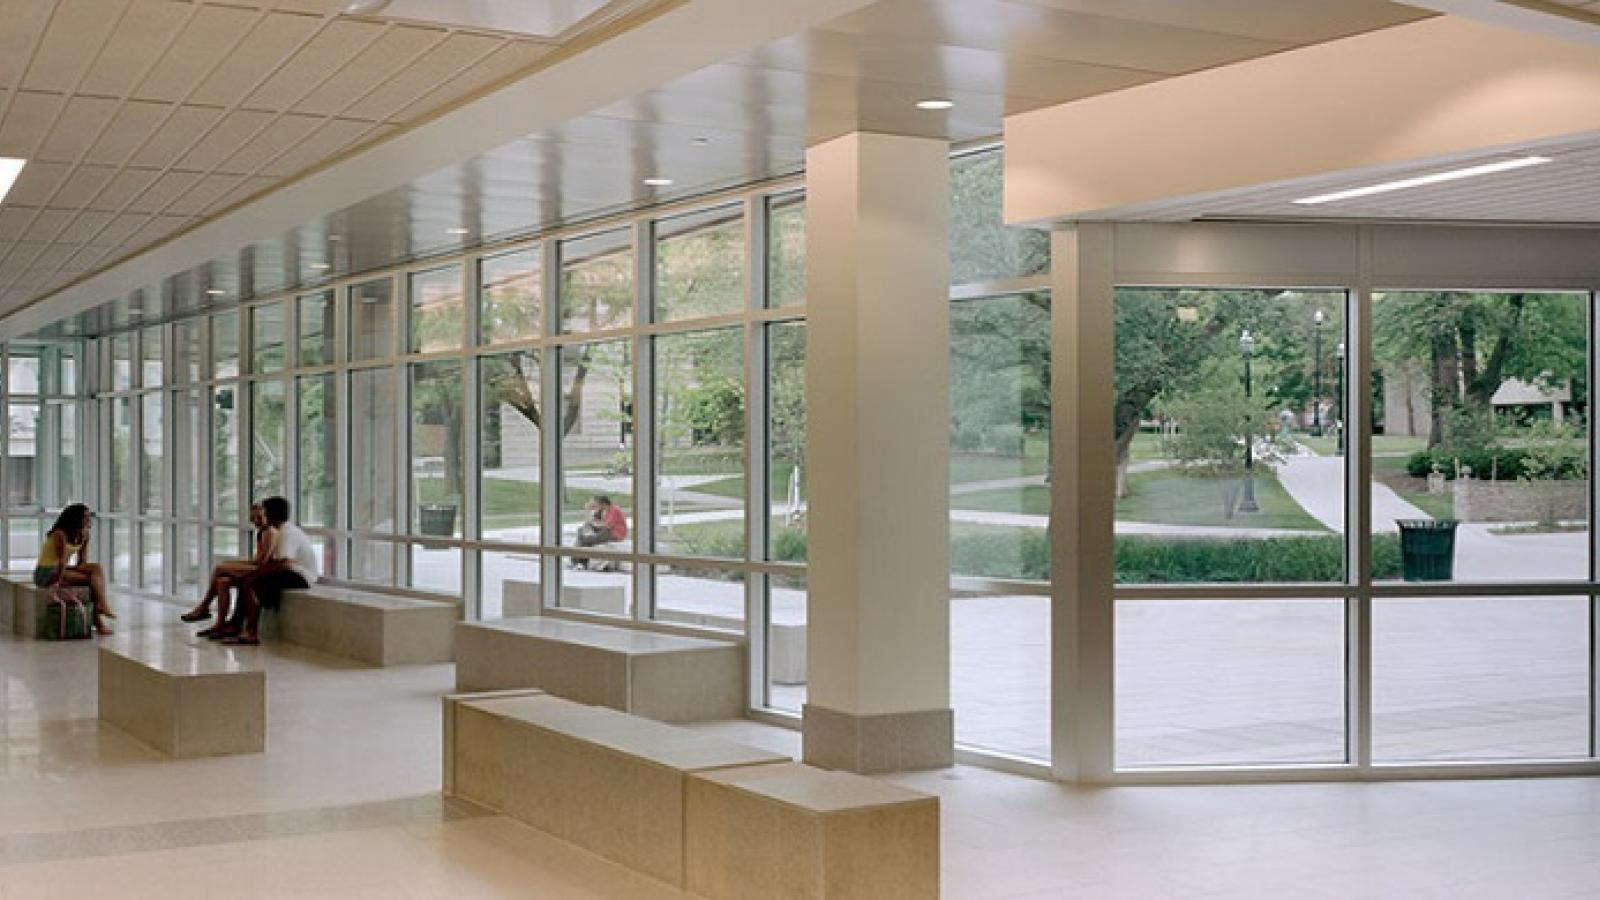 The lobby of the Psychology Building